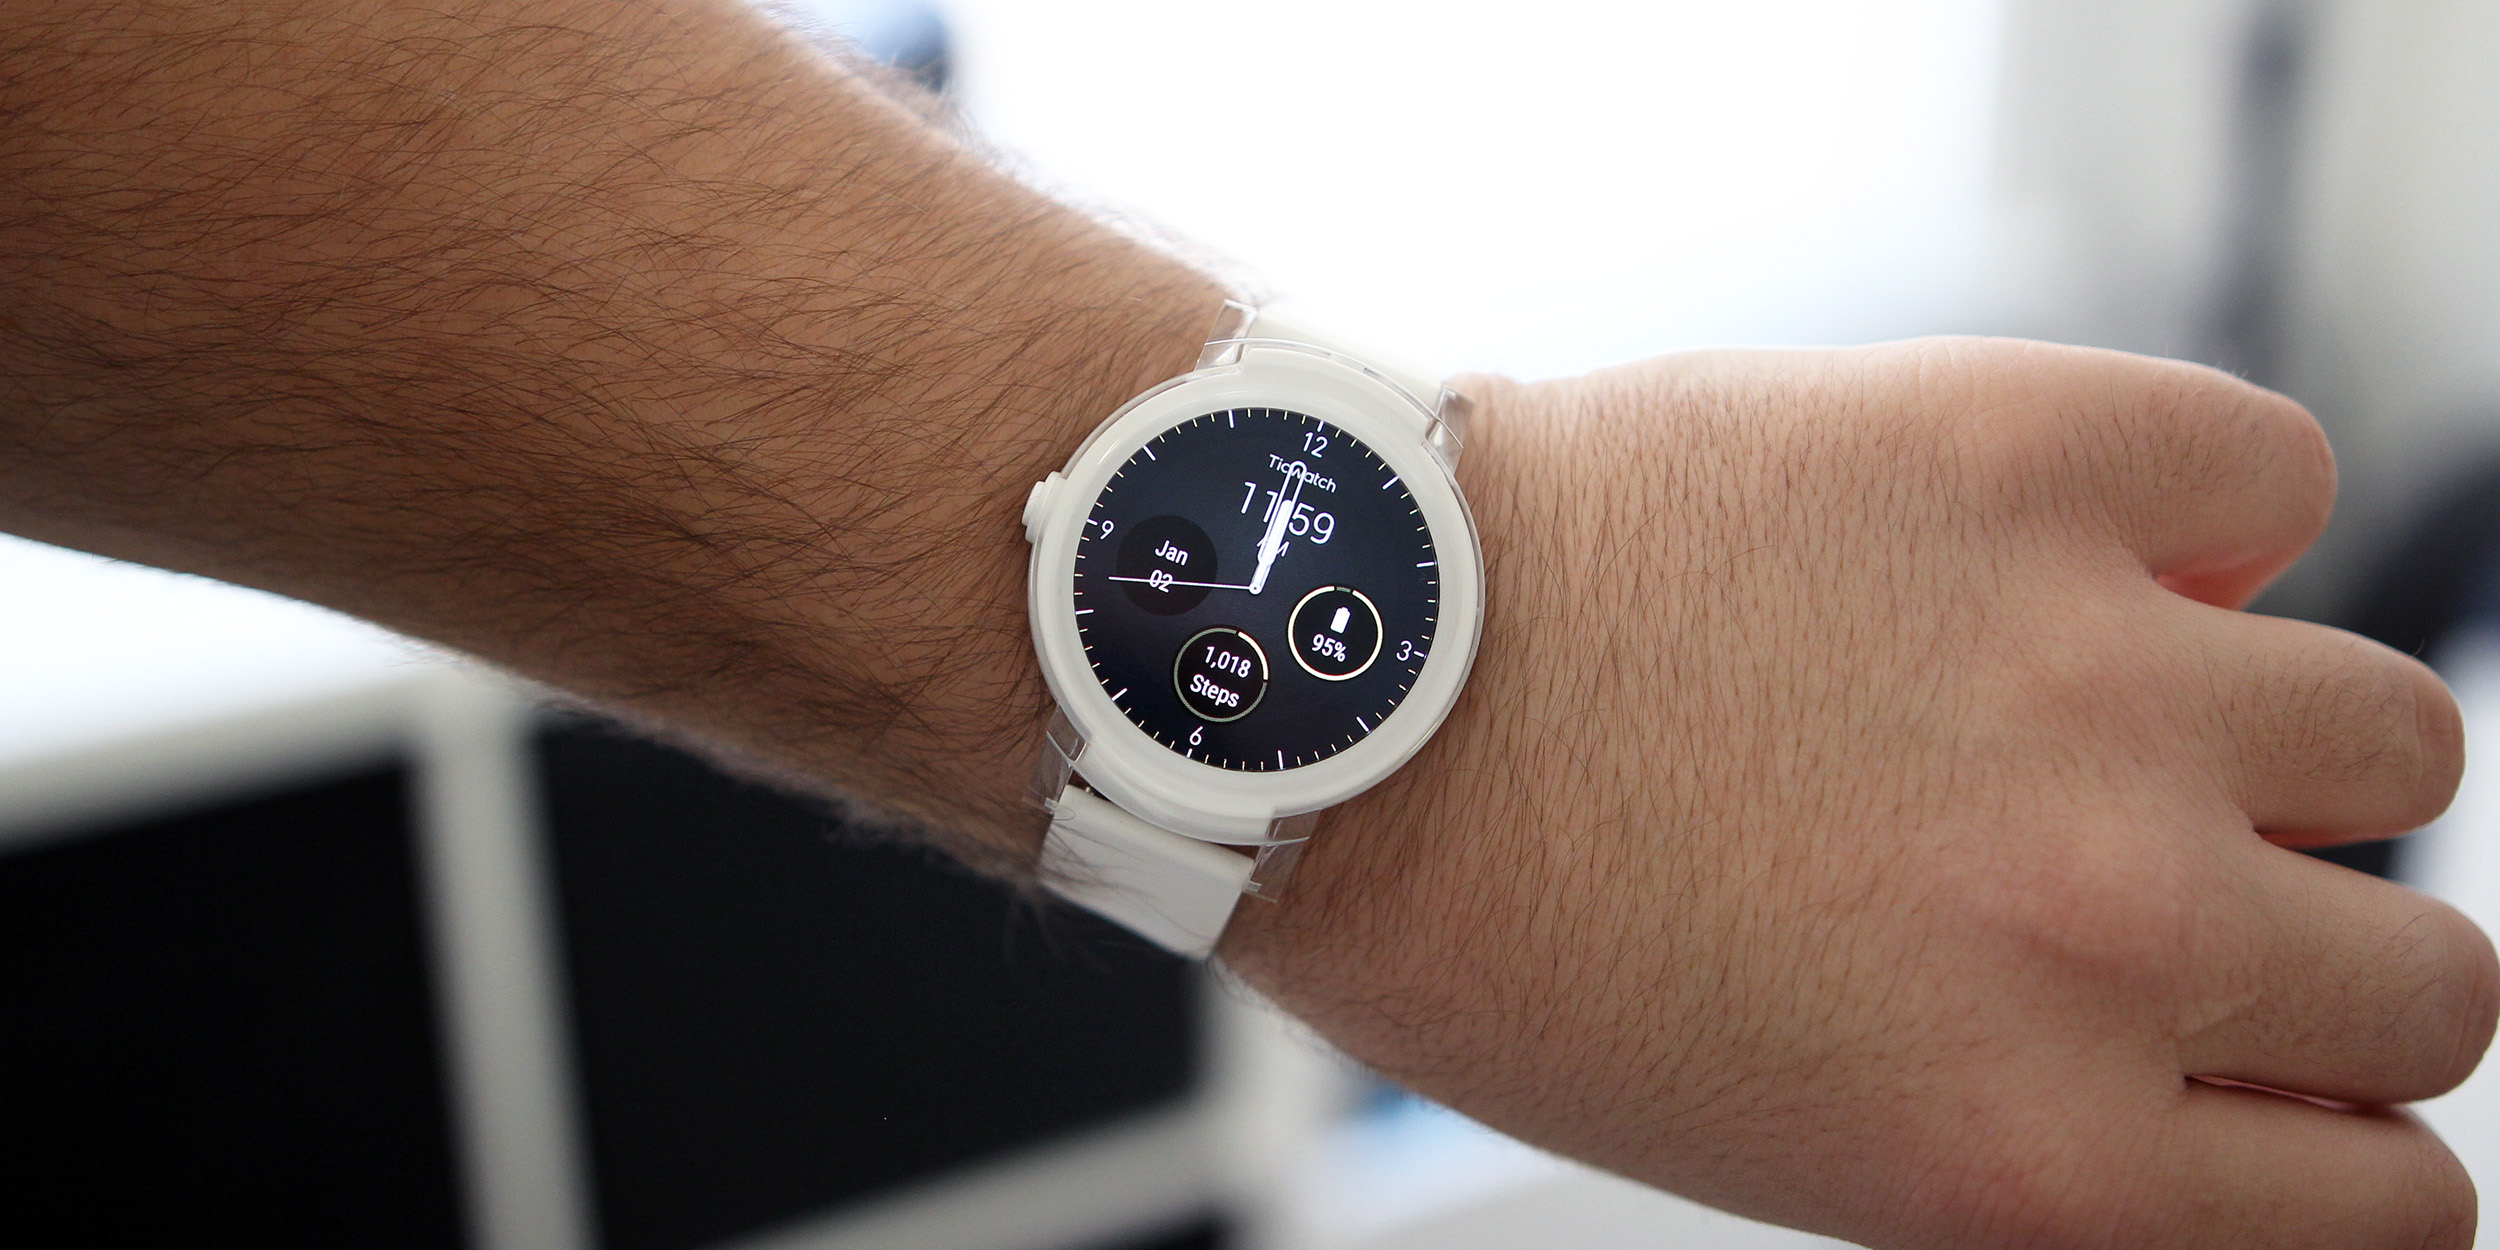 Review Mobvoi S Ticwatch E Is The Best Bang For Your Buck Android Wear Smartwatch 9to5google